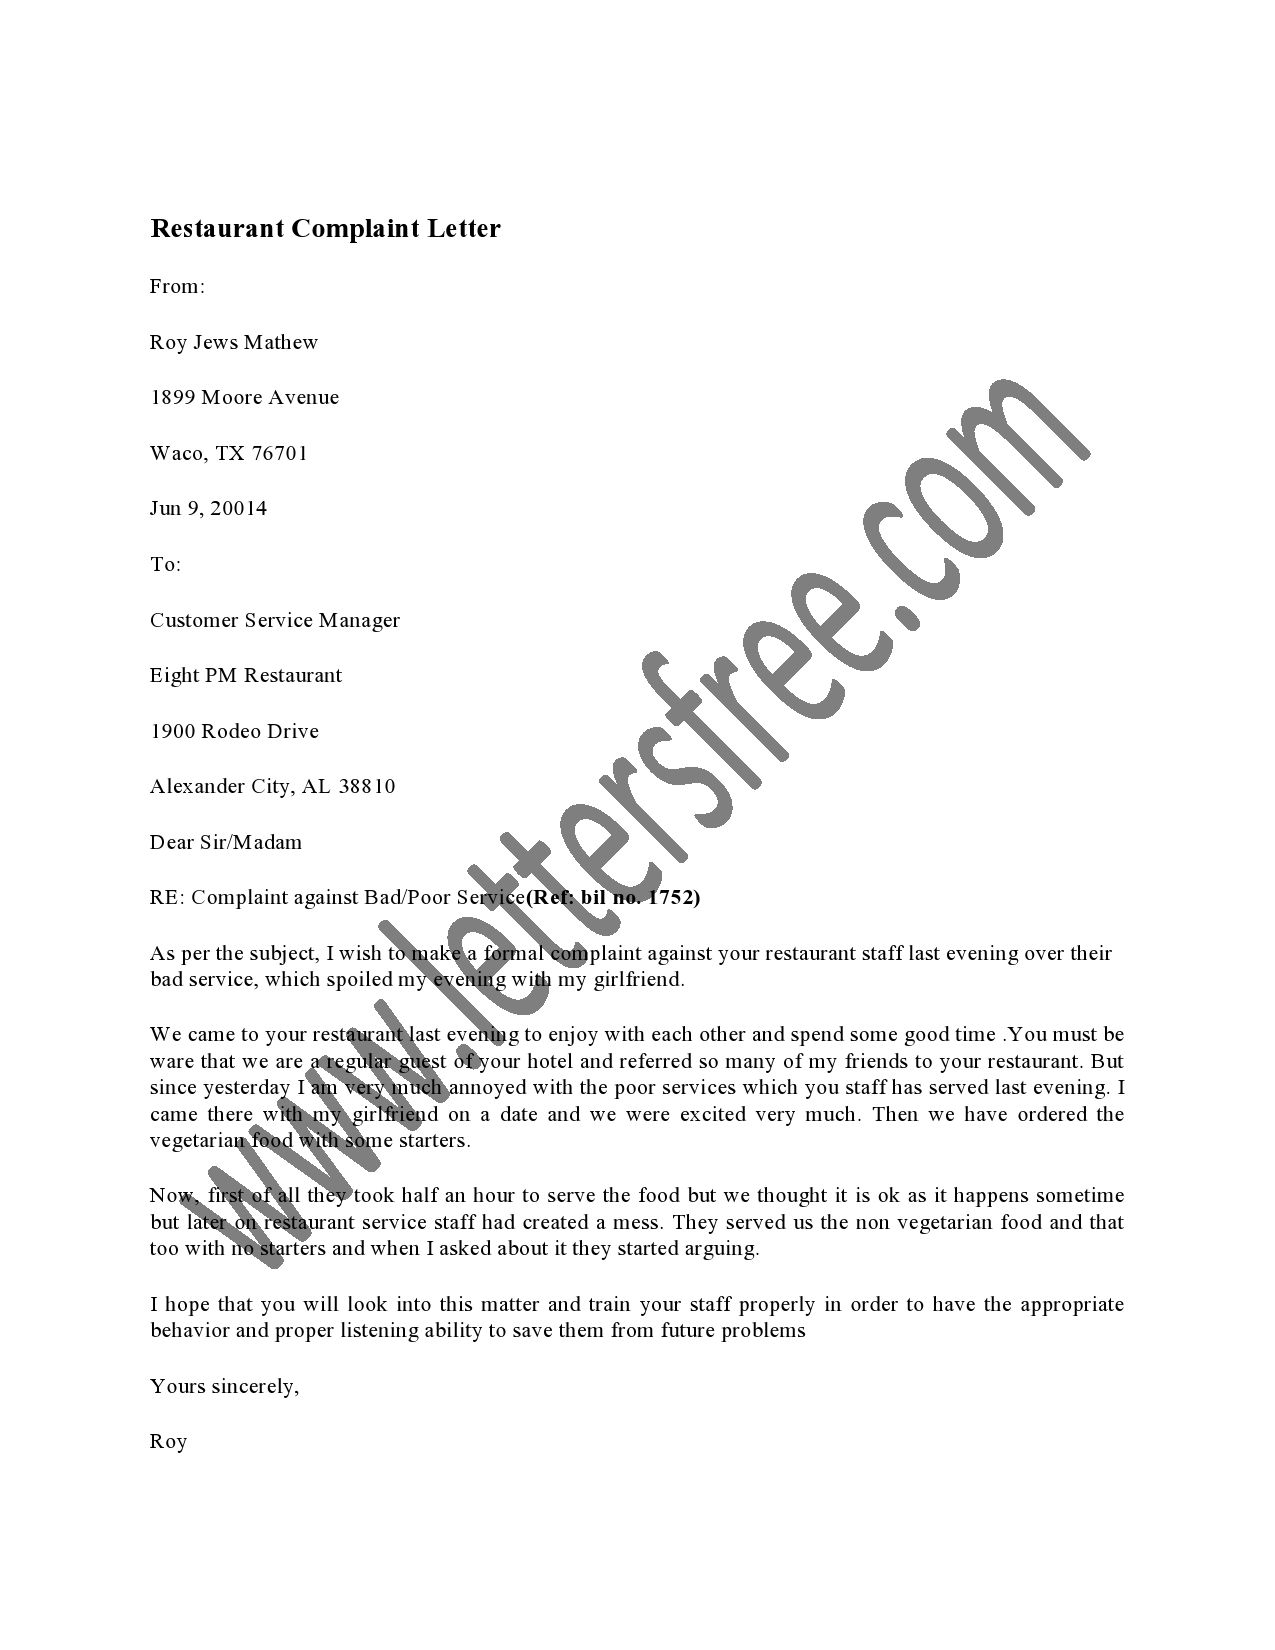 an employee complaint letter is a way for employees to make a a restaurant complaint letter is usually sent by a frustrated customer of the restaurant who could